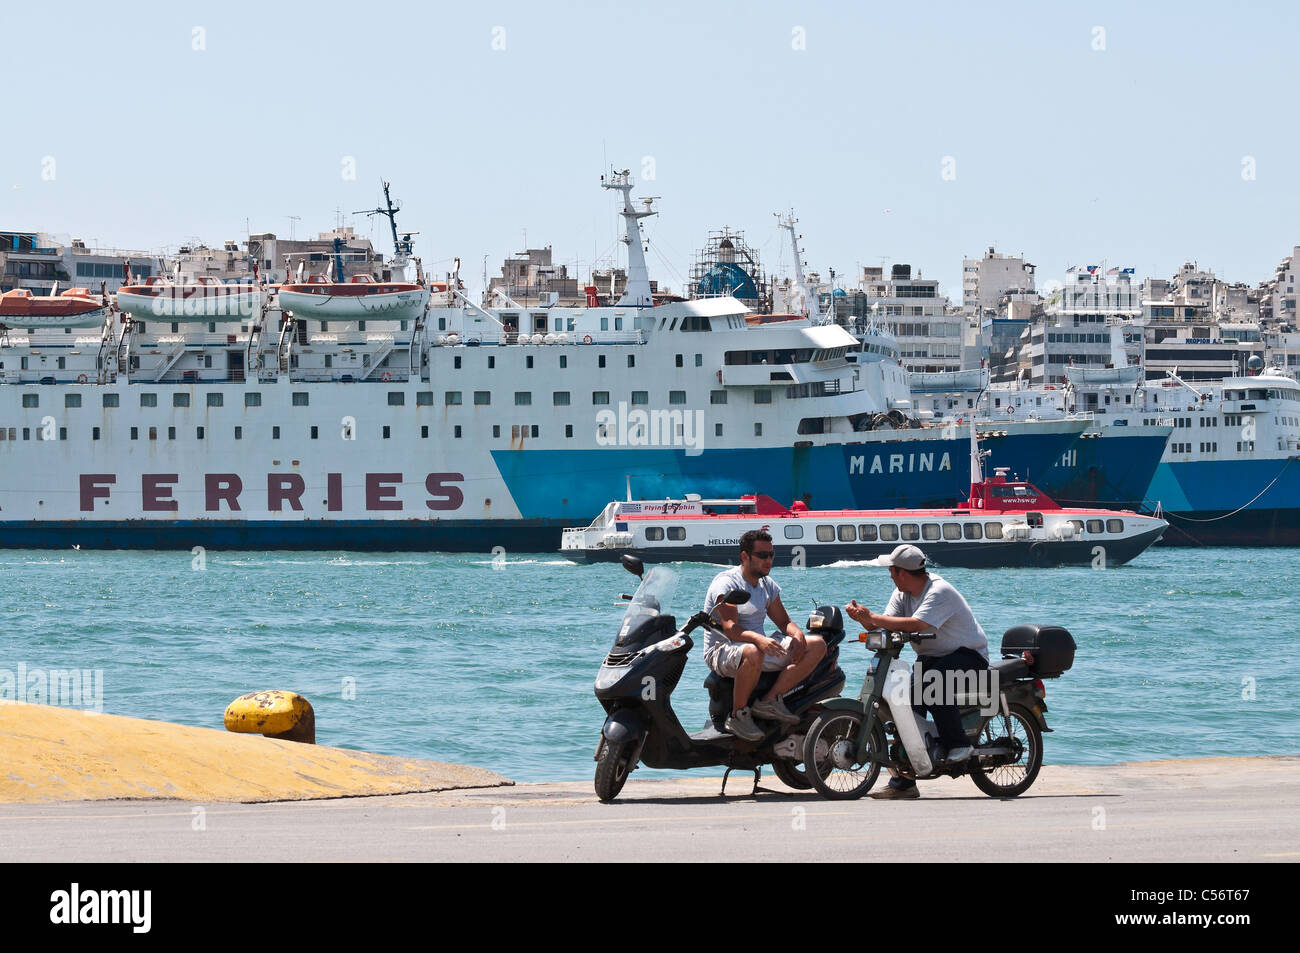 Ferries in the harbour at Pireaus, Athens, Greece. - Stock Image